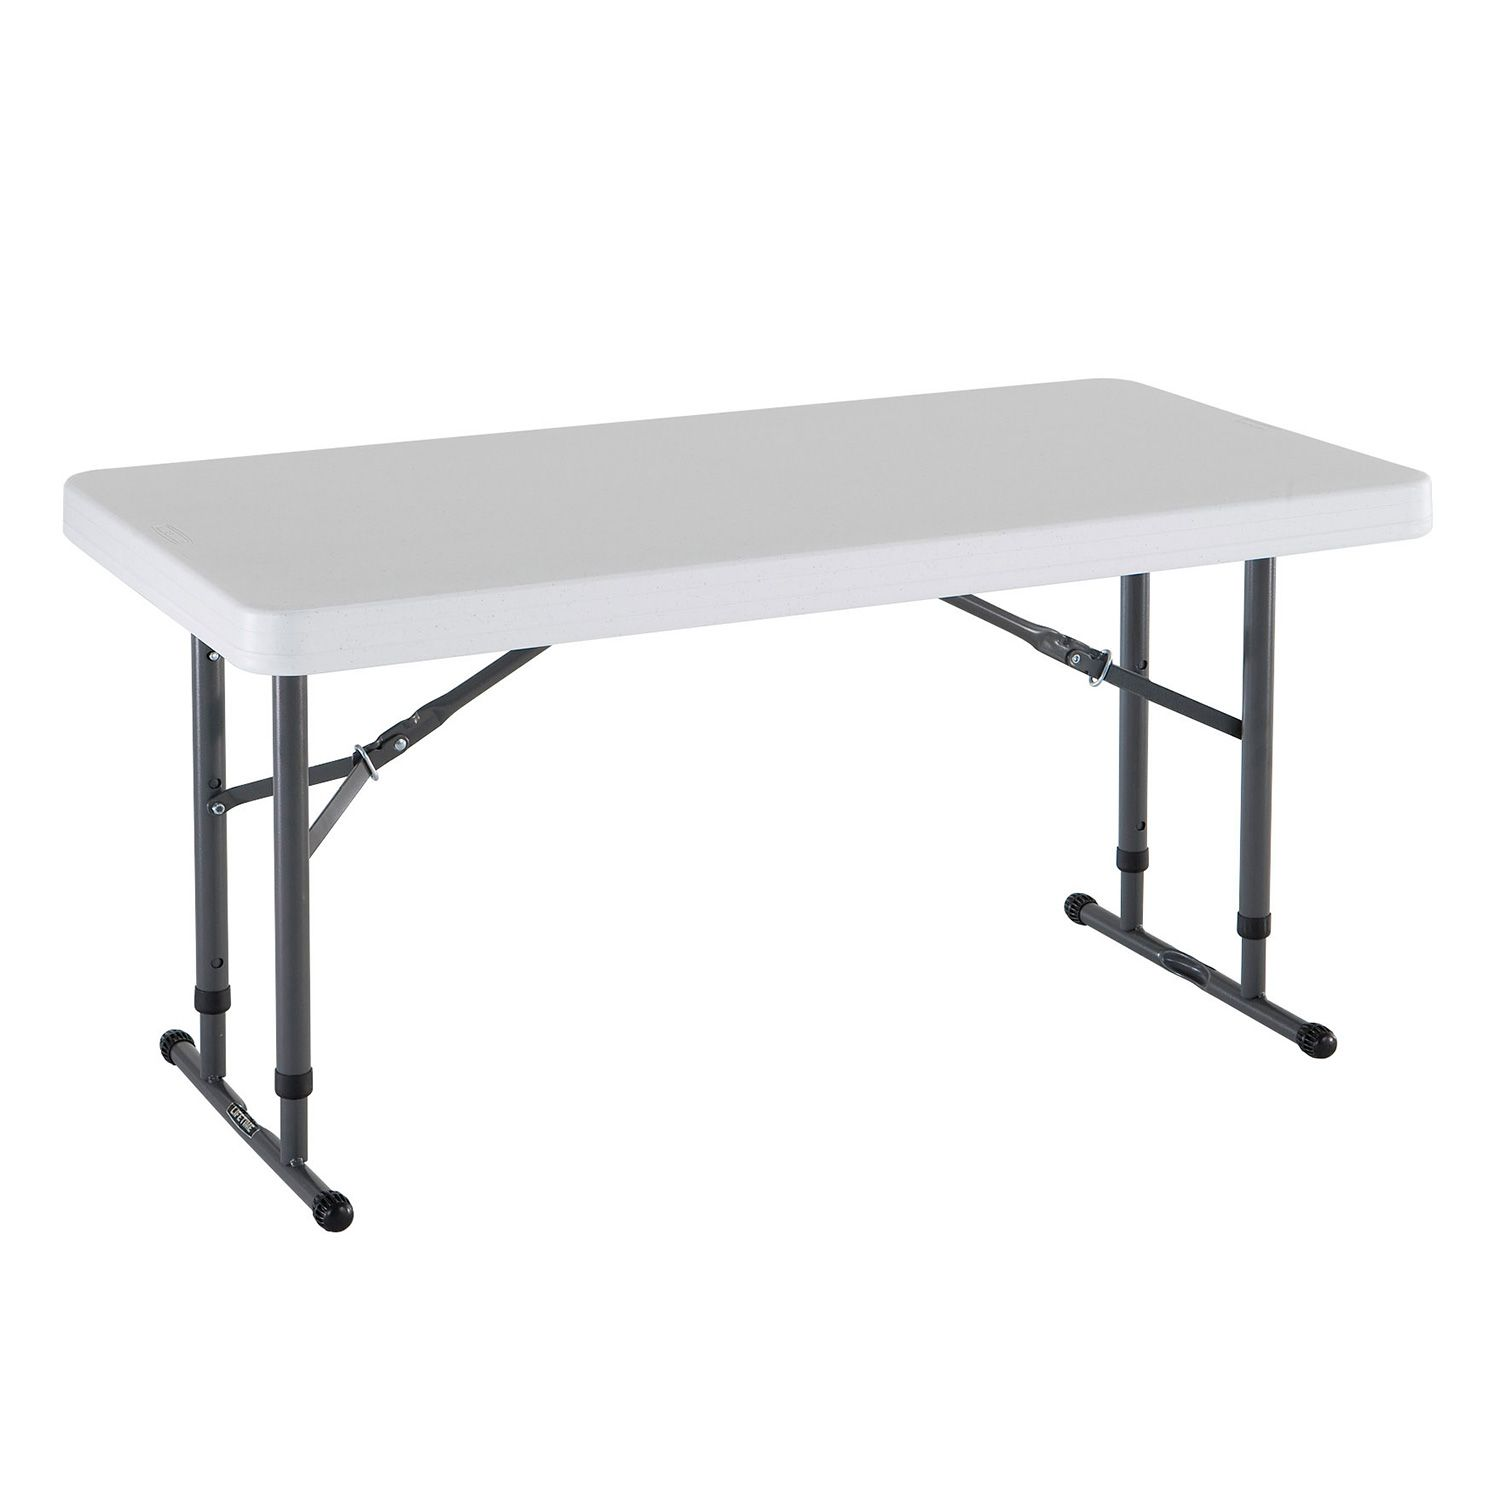 Banquet Tables 4 Ft